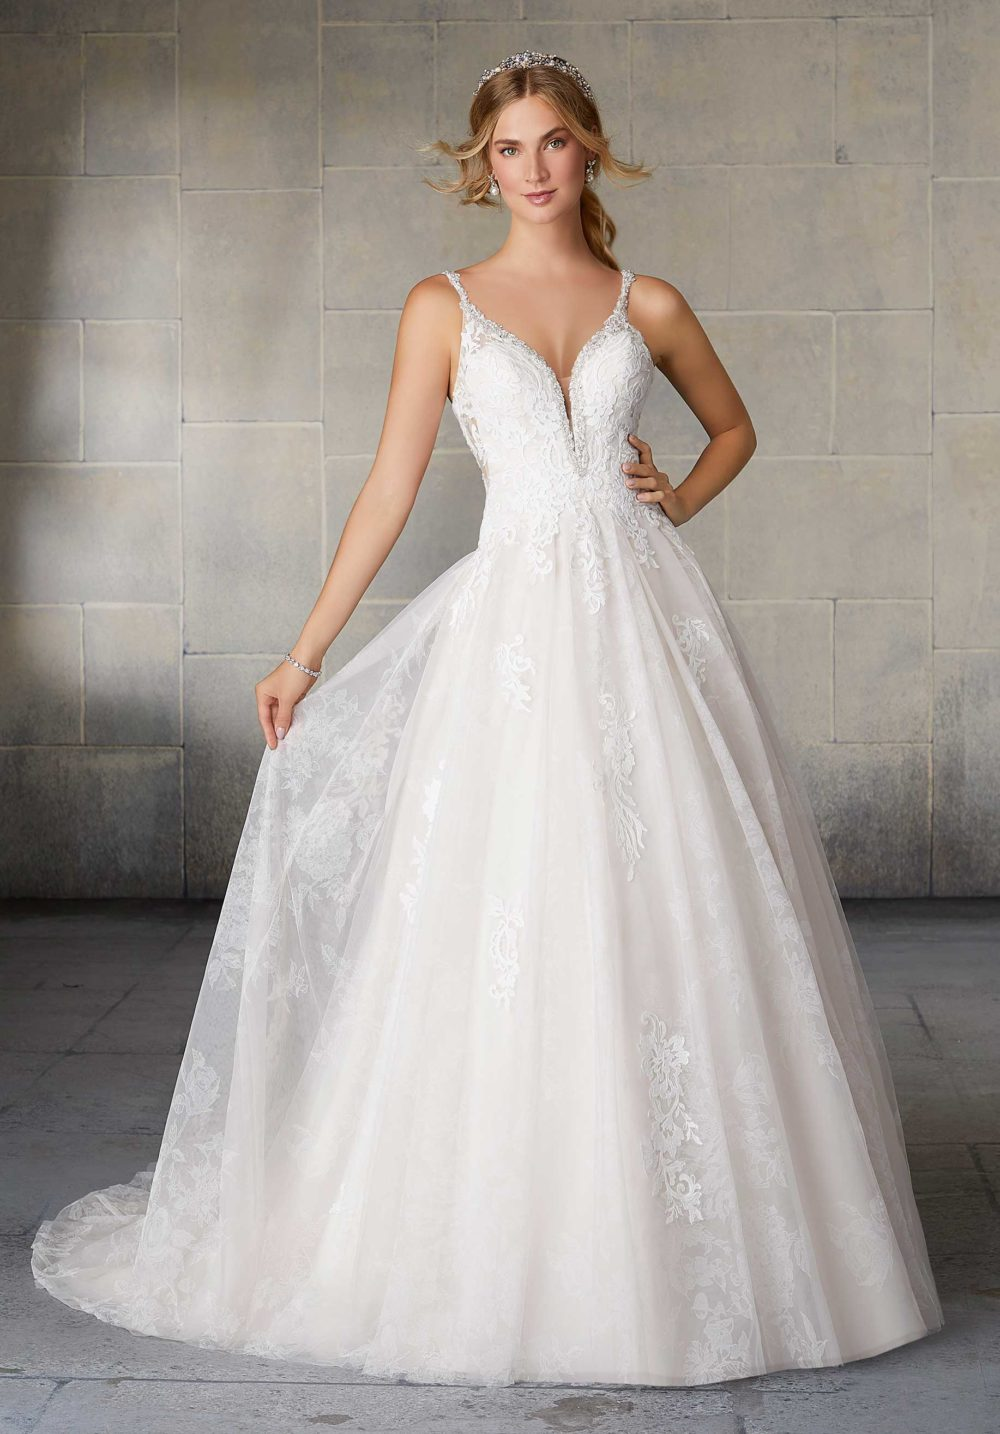 Morilee Wedding Gown Dress style 2120